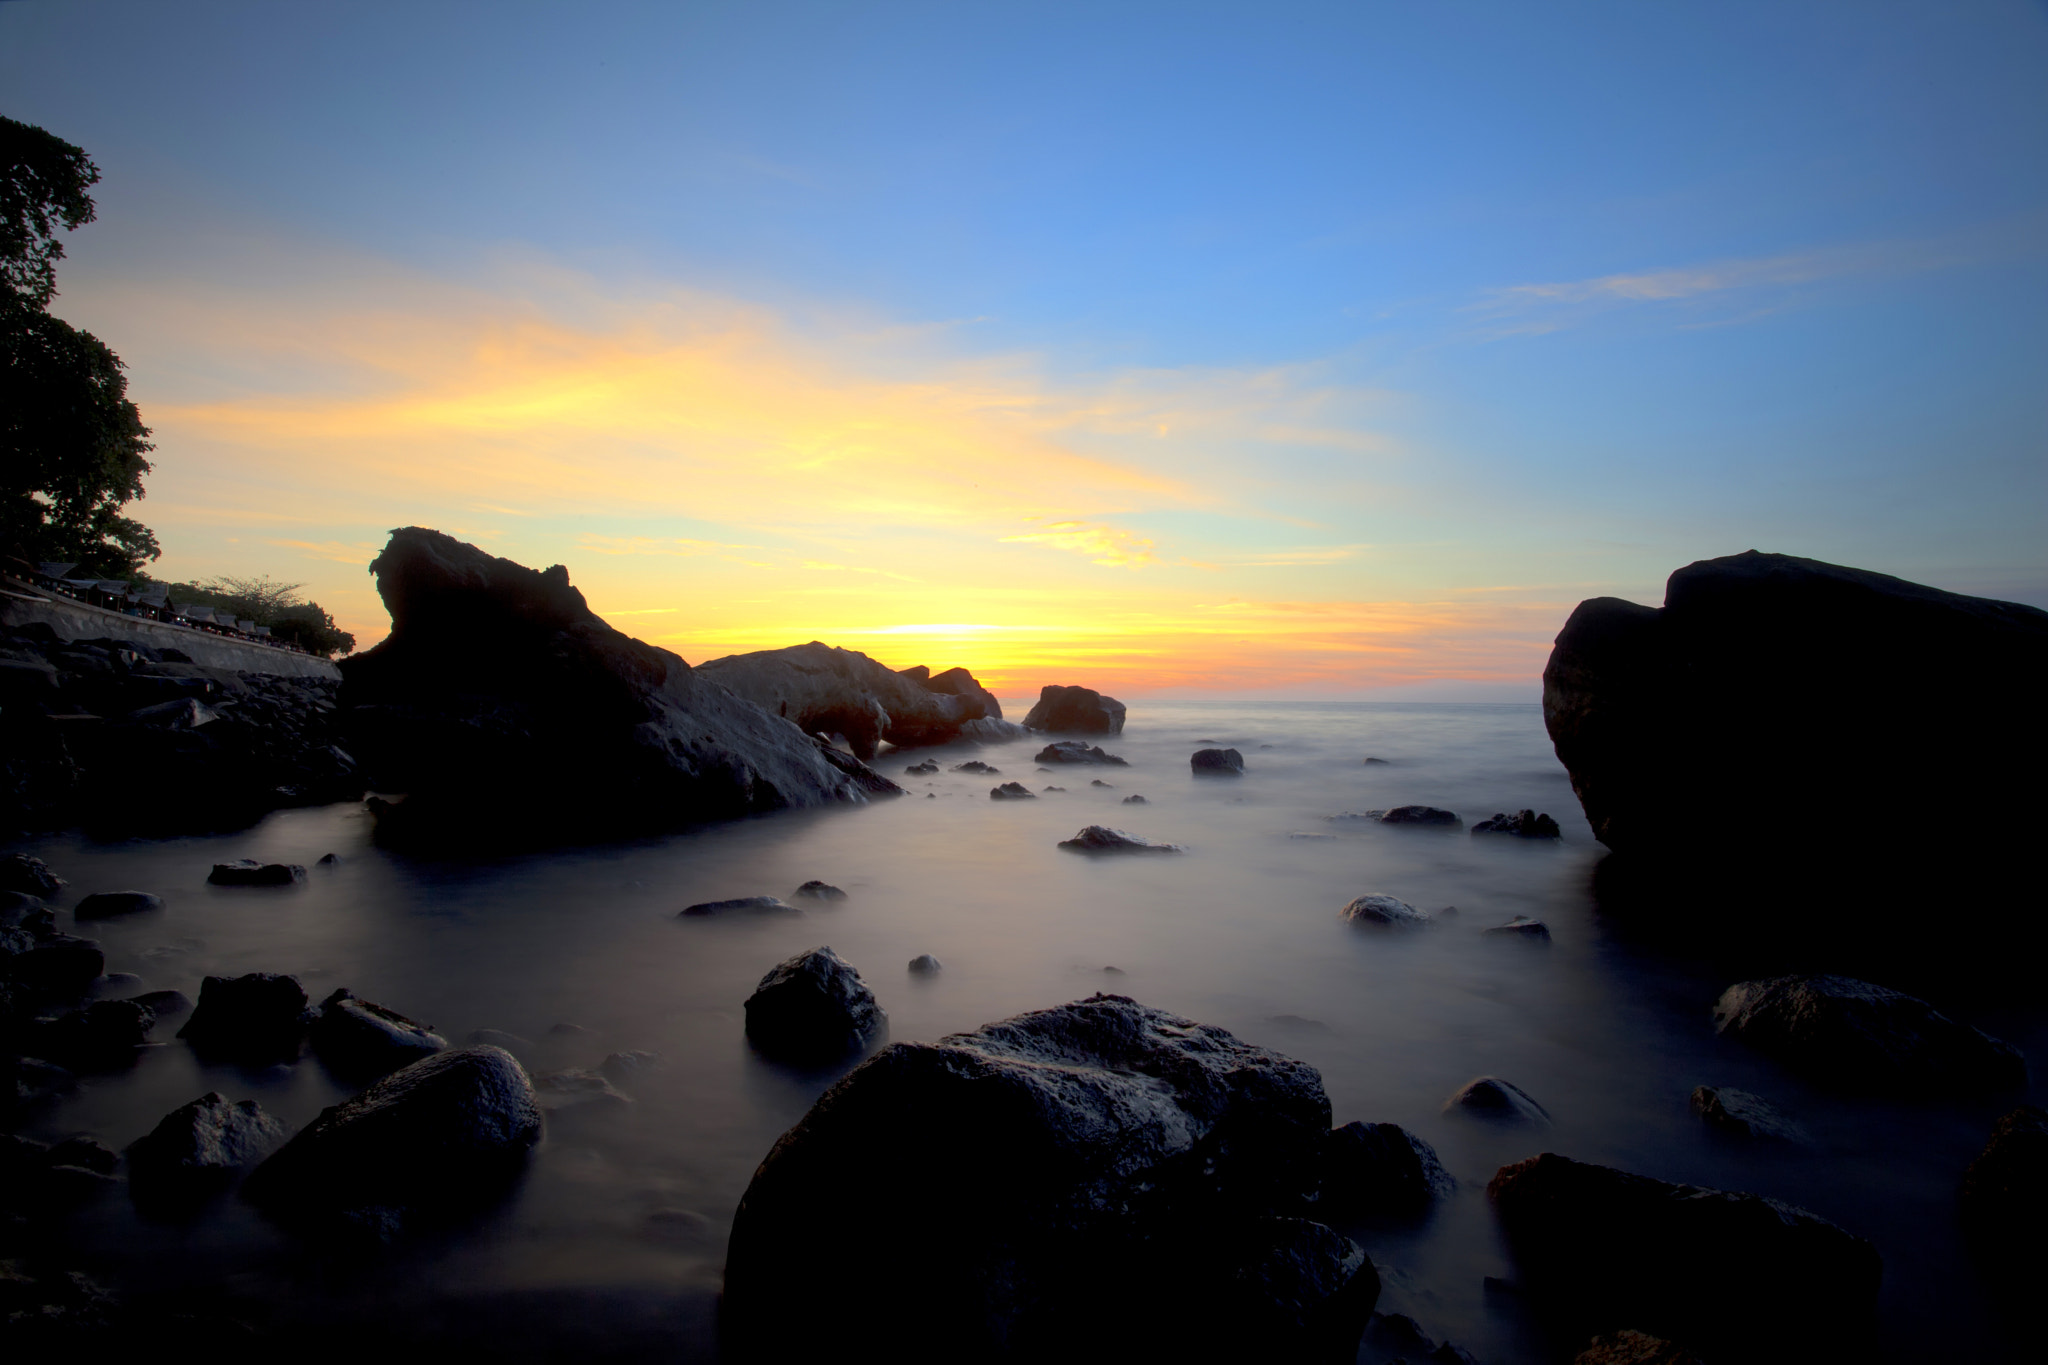 Photograph Sunset 2 by Rocky Wr on 500px